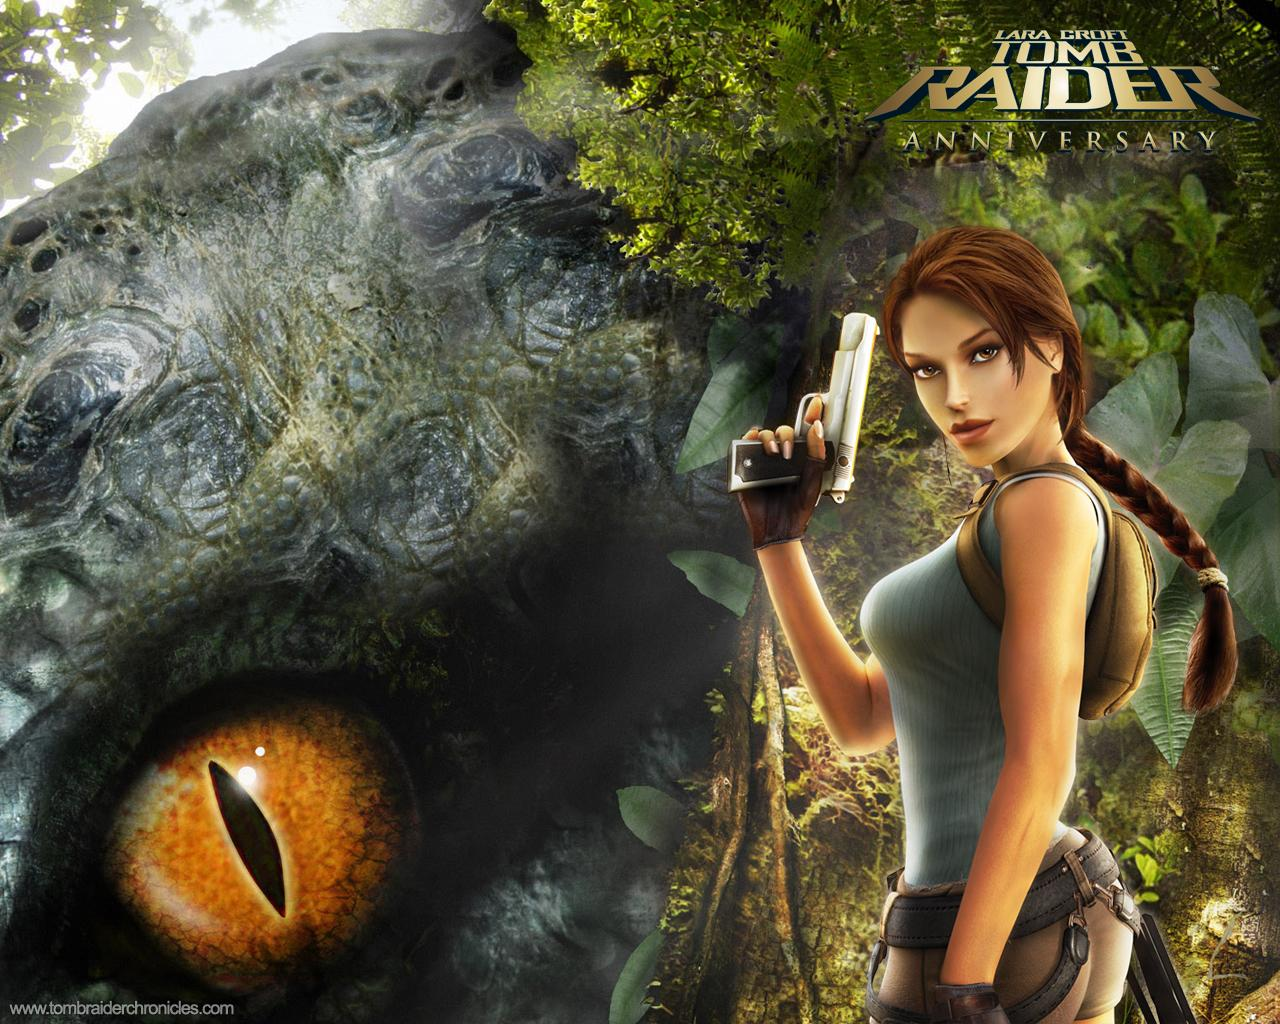 Download full size Tomb Raider Anniversary wallpaper   Games    Tomb Raider Anniversary Wallpaper